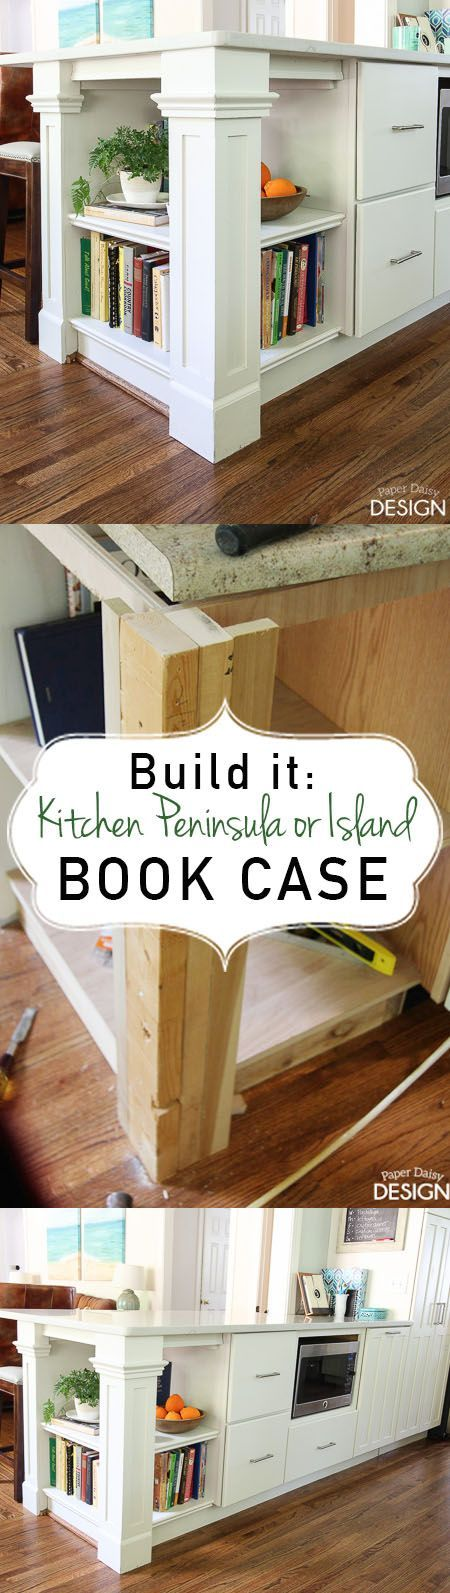 How To Build A Kitchen Peninsula Or Island Book Case Or Bookshelves. Create  Architectural Interest And Storage In Your Kitchen. #DIYKitchenRemodel